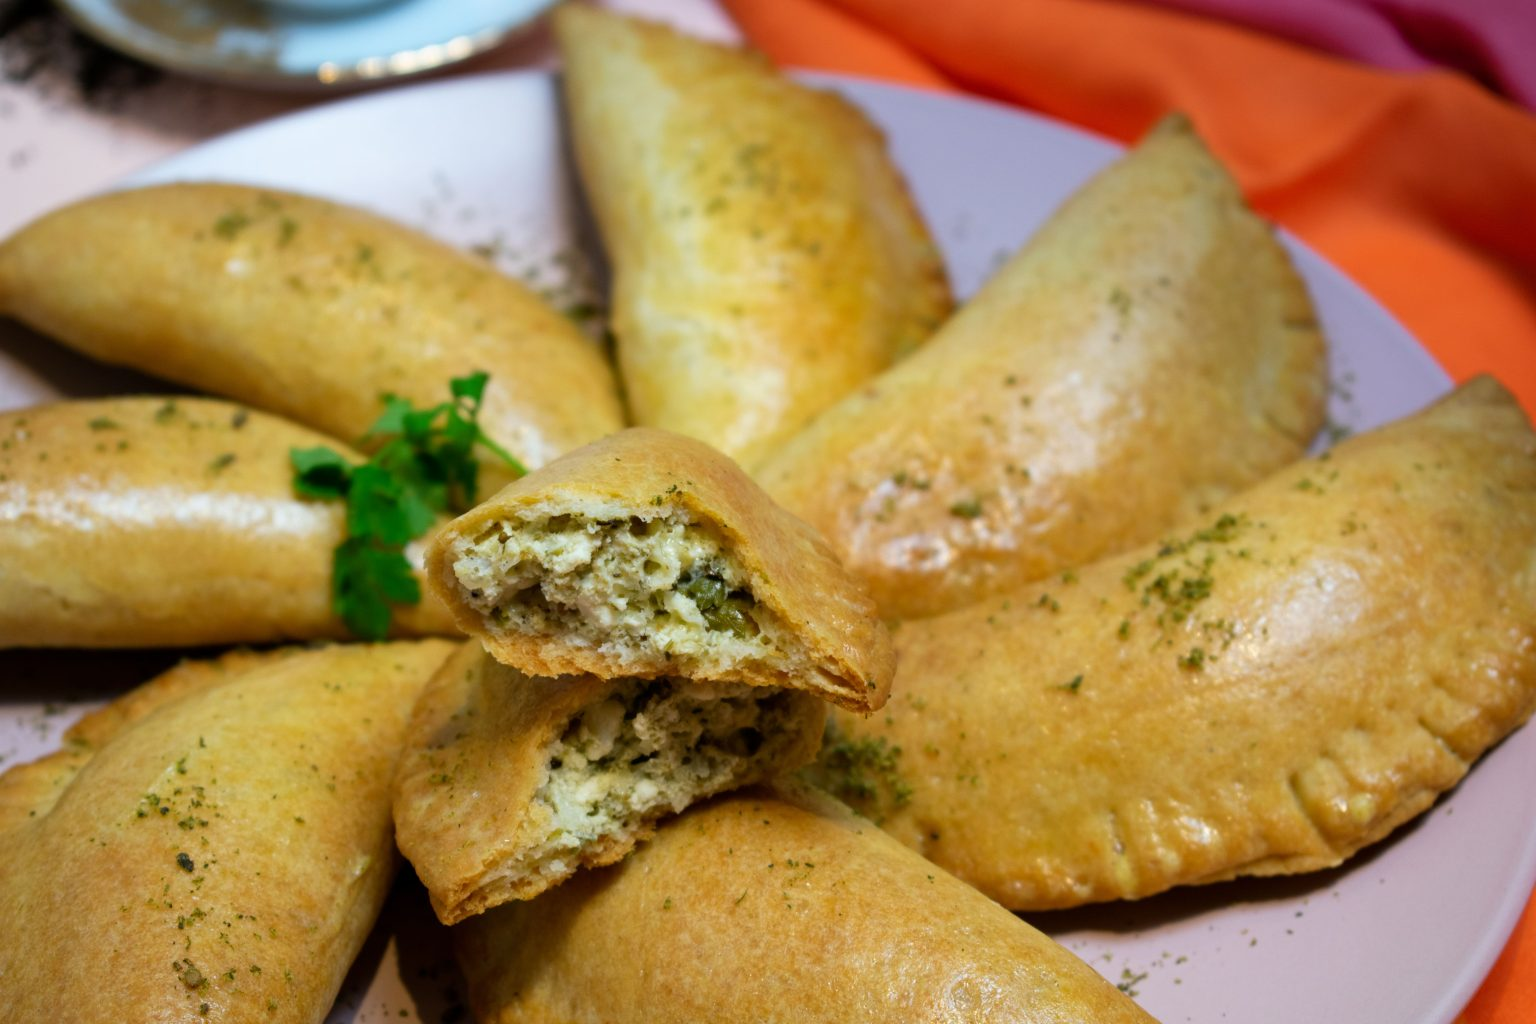 Close-up of Middle Eastern Cheese Pastries and Parsley